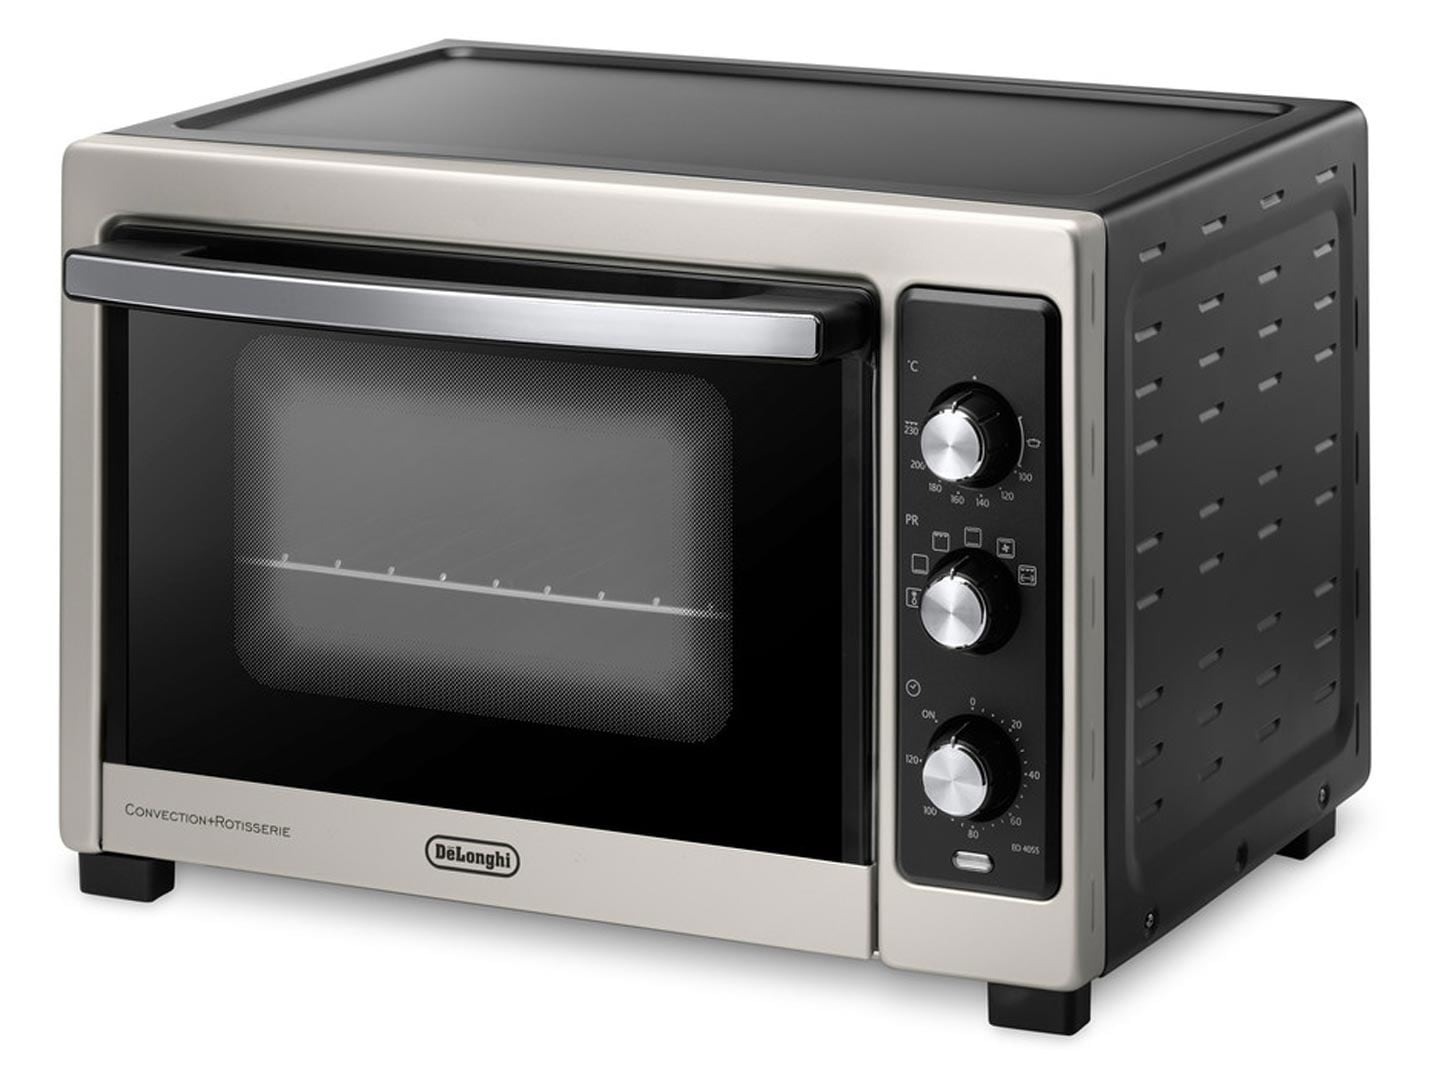 Delonghi oven eo4055 review